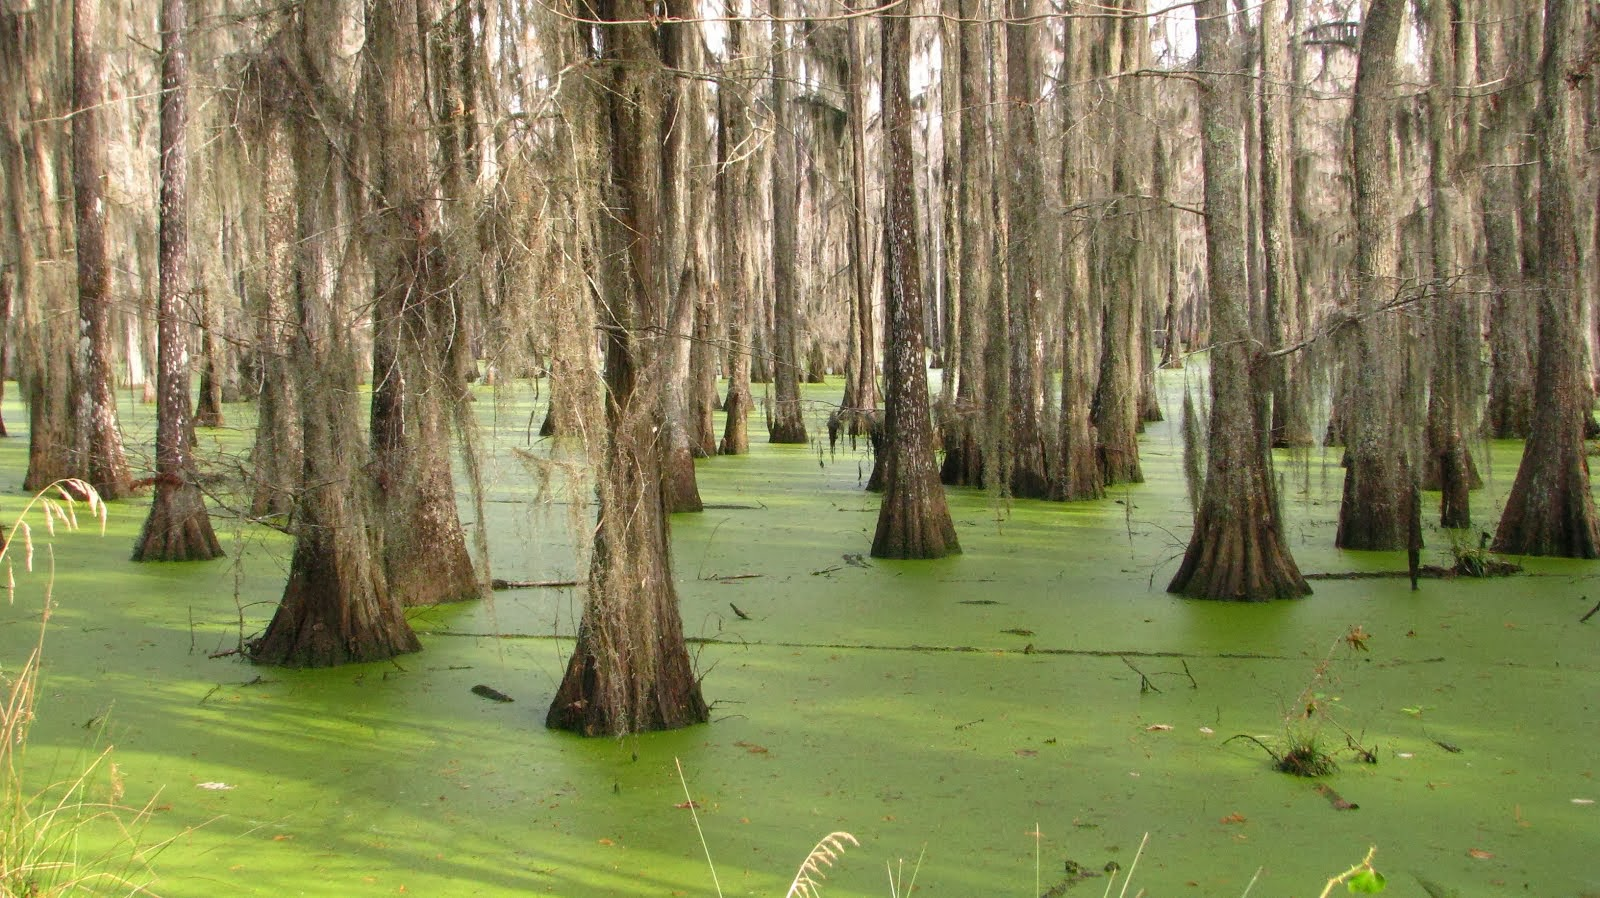 Halfway Swamp, South Carolina BEFORE THE FLOOD OF 2015